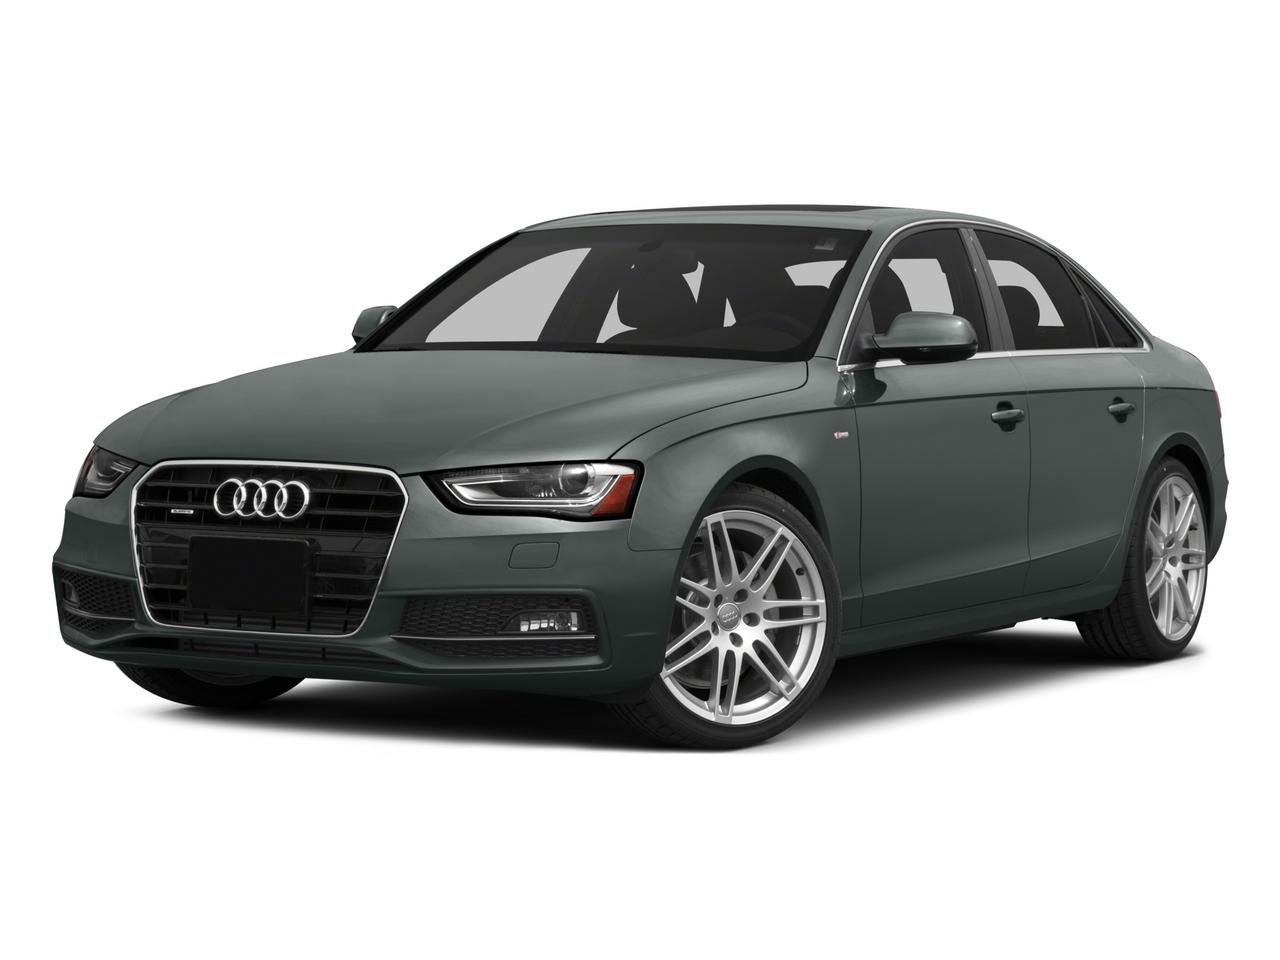 2015 Audi A4 Vehicle Photo in Grapevine, TX 76051